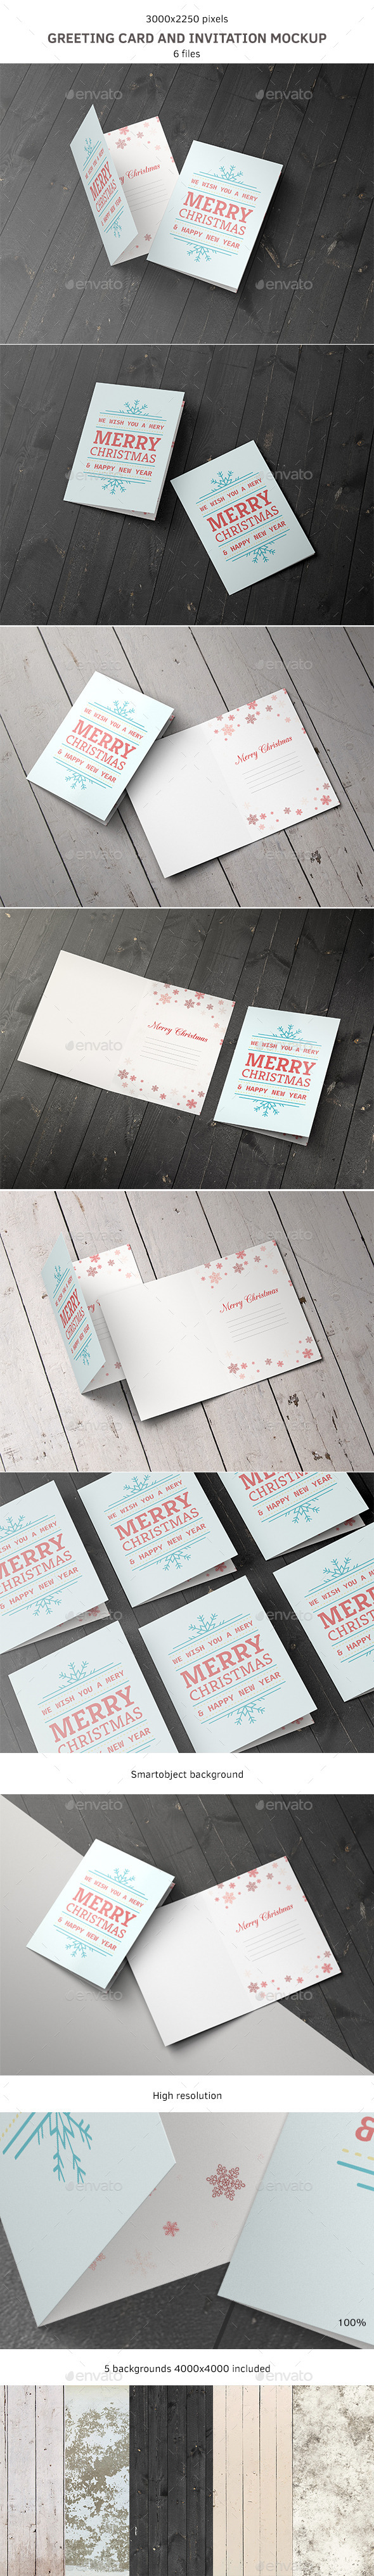 GraphicRiver Greeting Card and Invitation Mockup 9242599